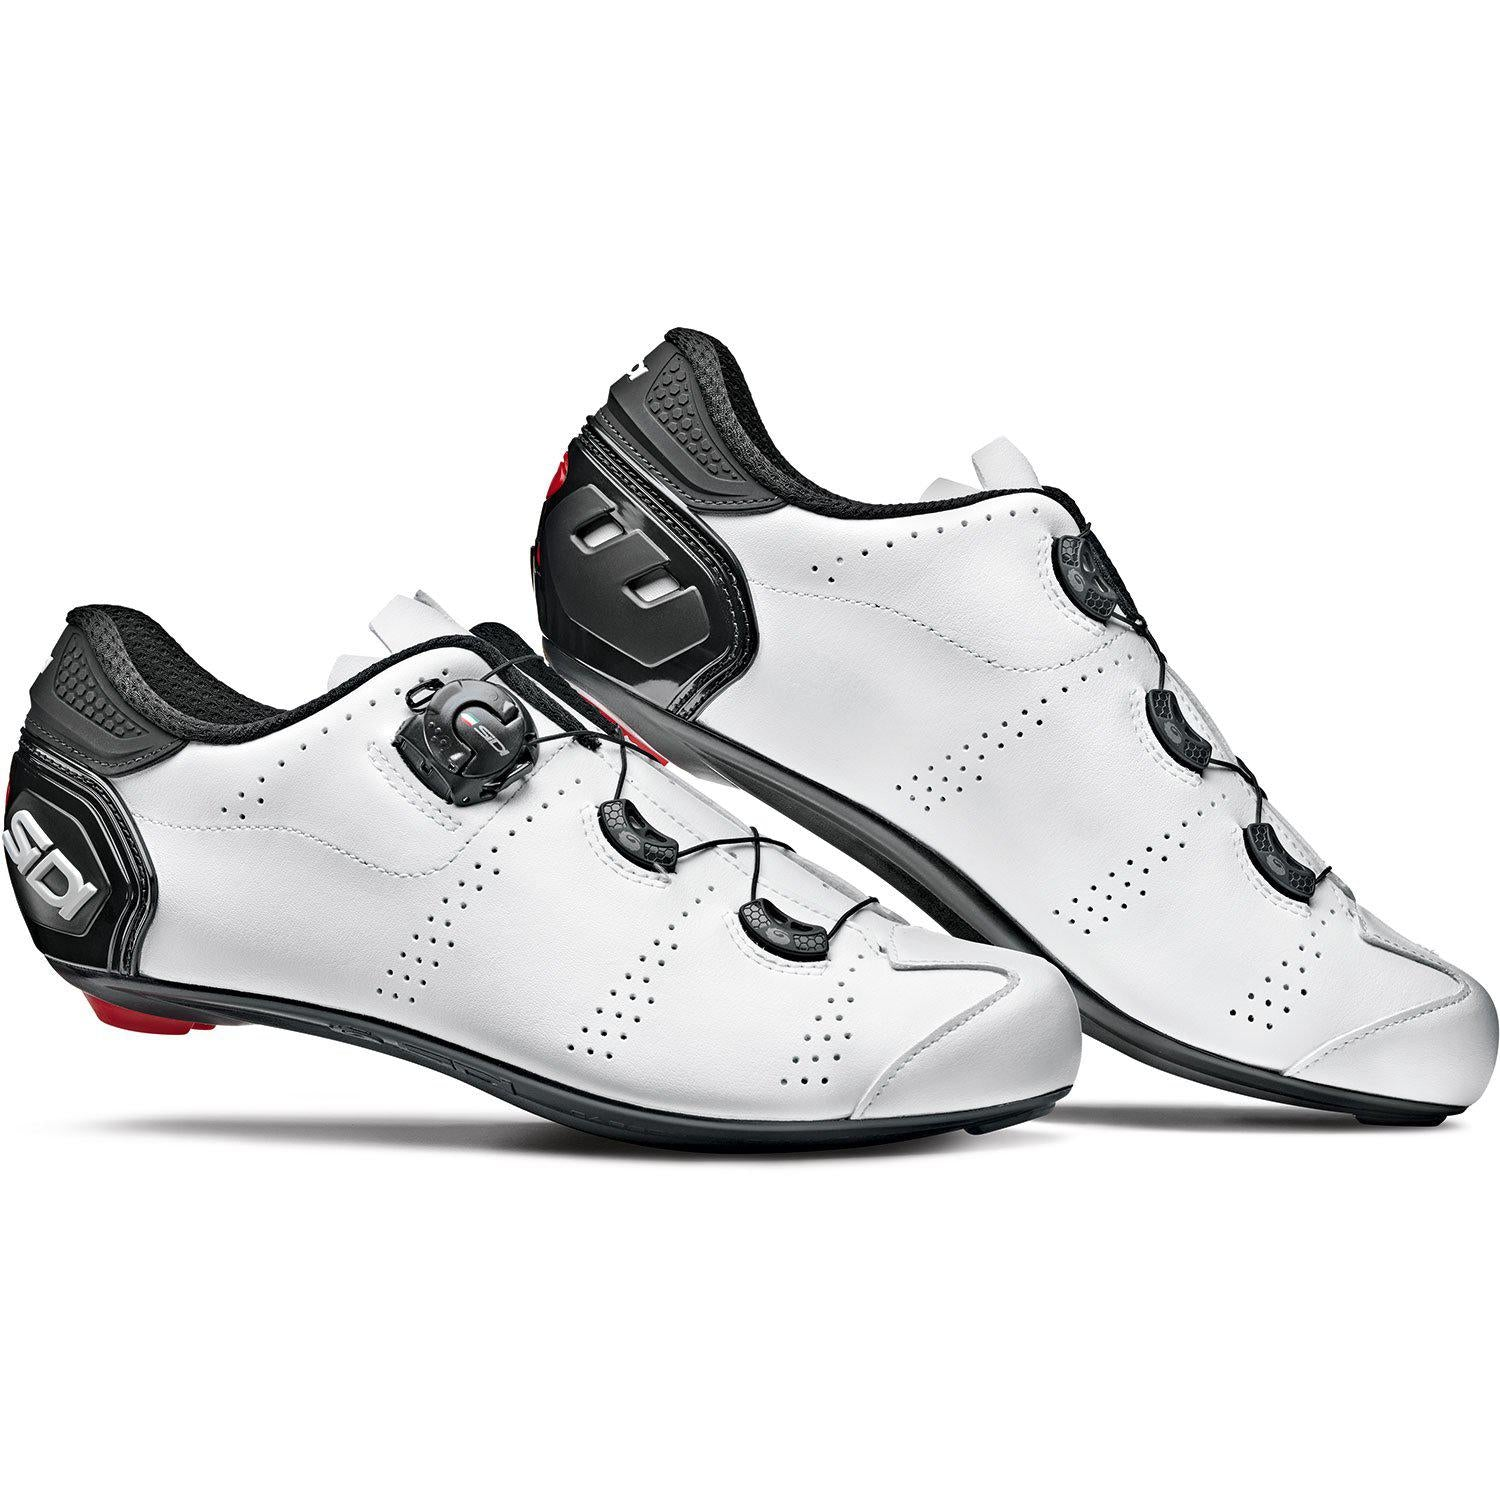 Sidi-Sidi Fast Road Shoes-White/White-38-SIFASTBIBI38-saddleback-elite-performance-cycling